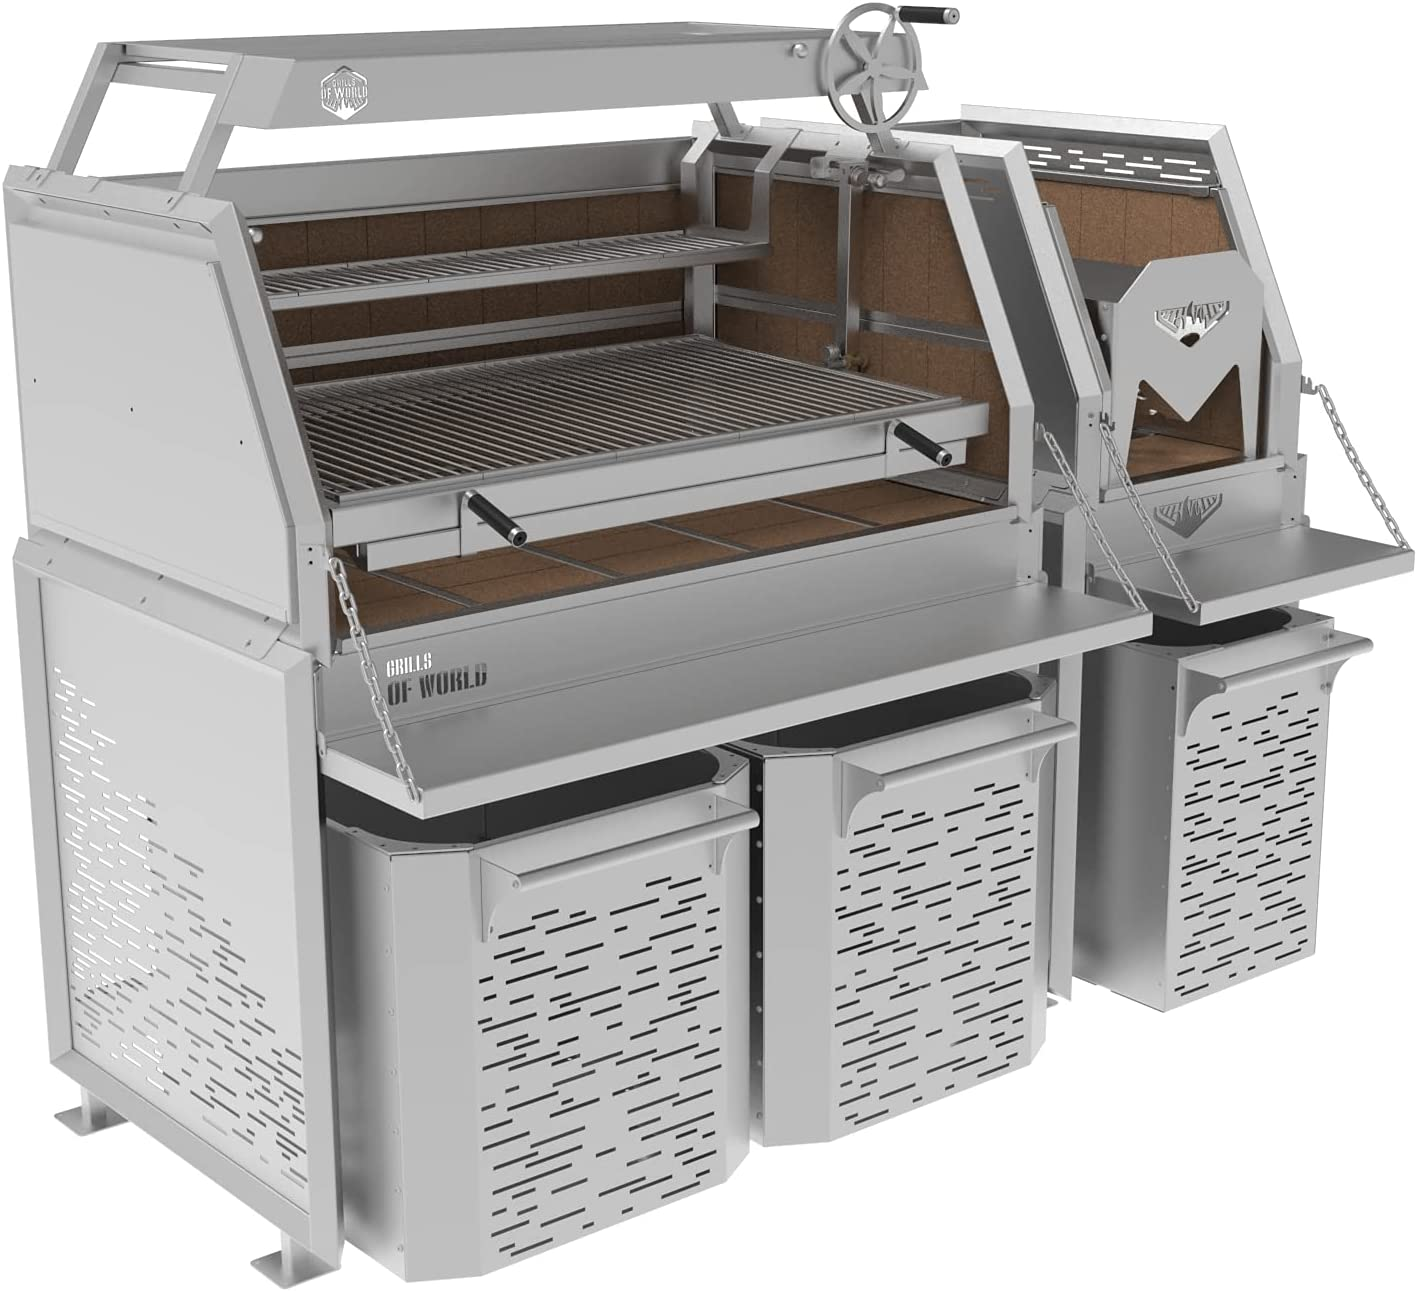 Professional Grill - 5 Self-Standing Stainless Sections Oakland Mall Steel Branded goods